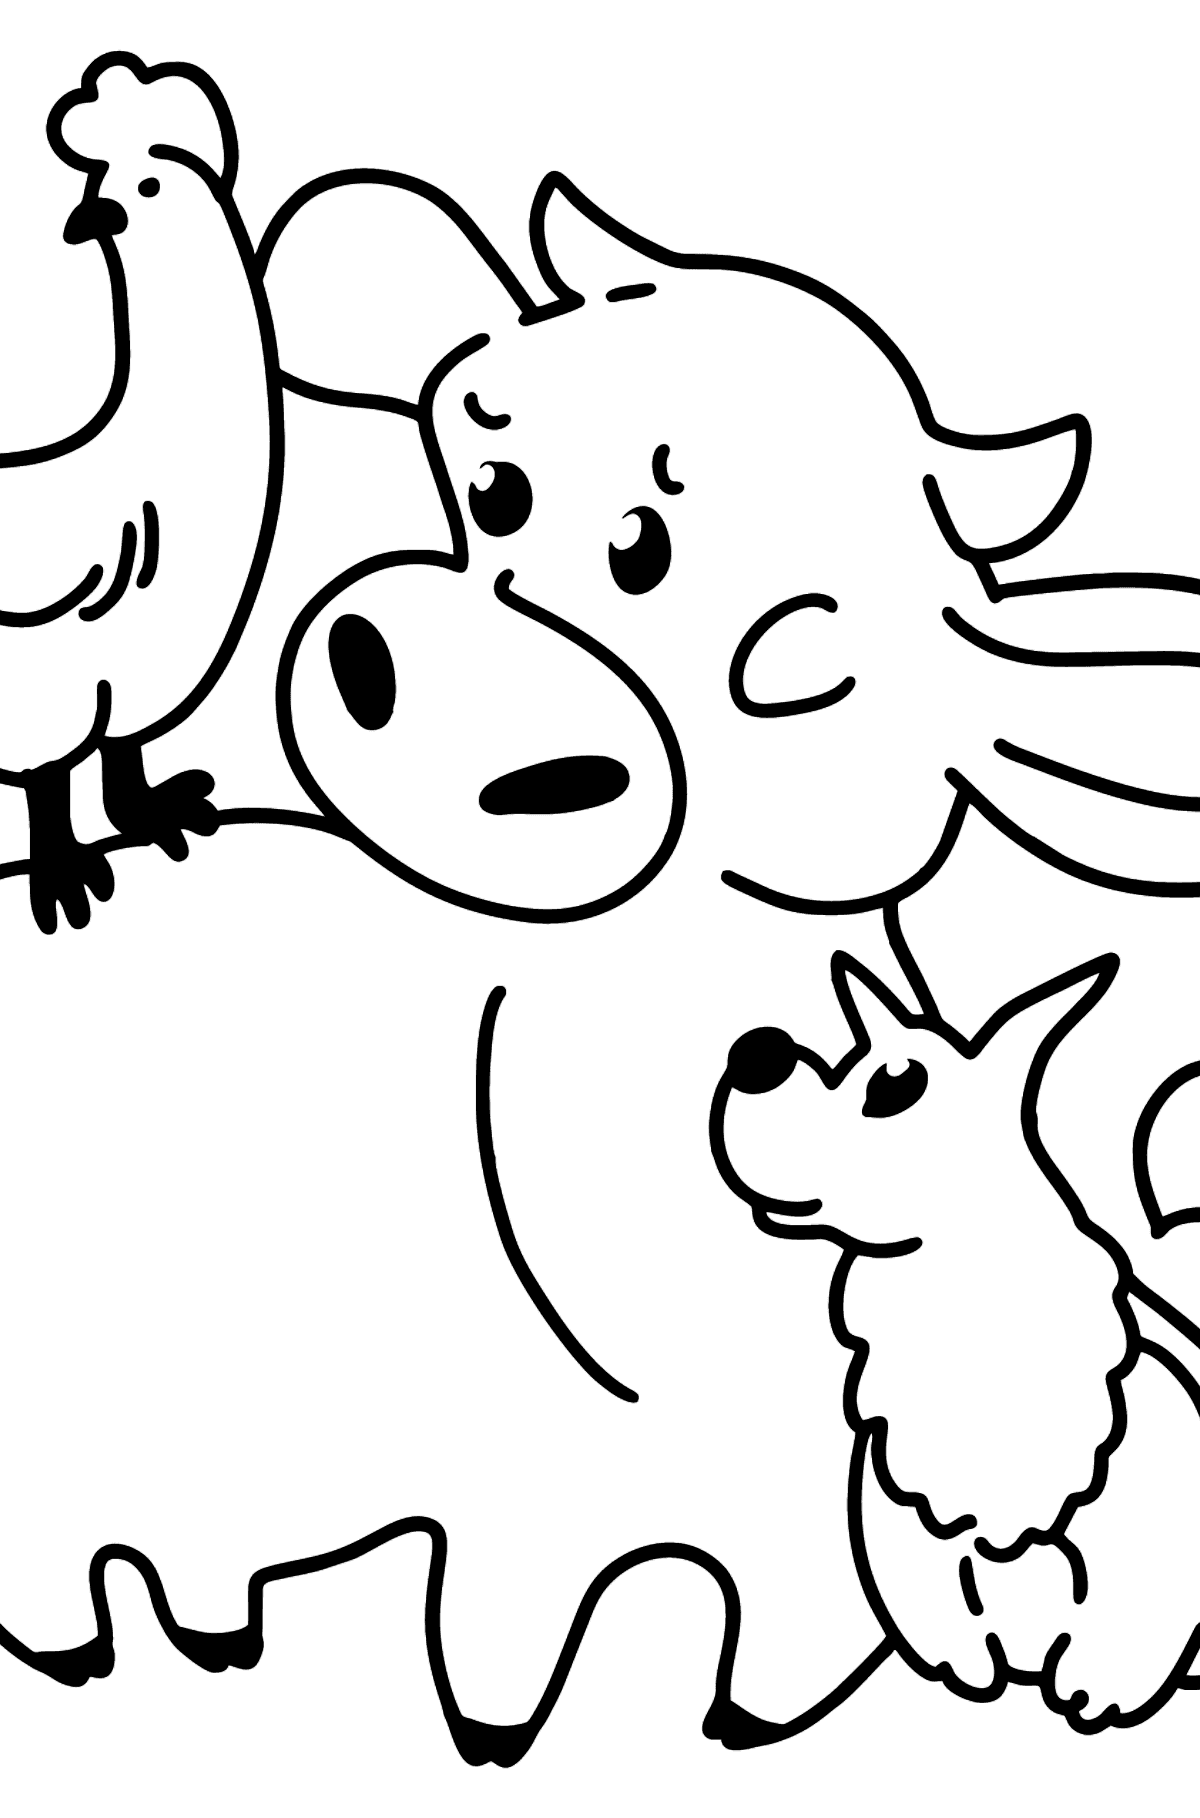 Coloring page: calf, chicken, and dog - Coloring Pages for Kids